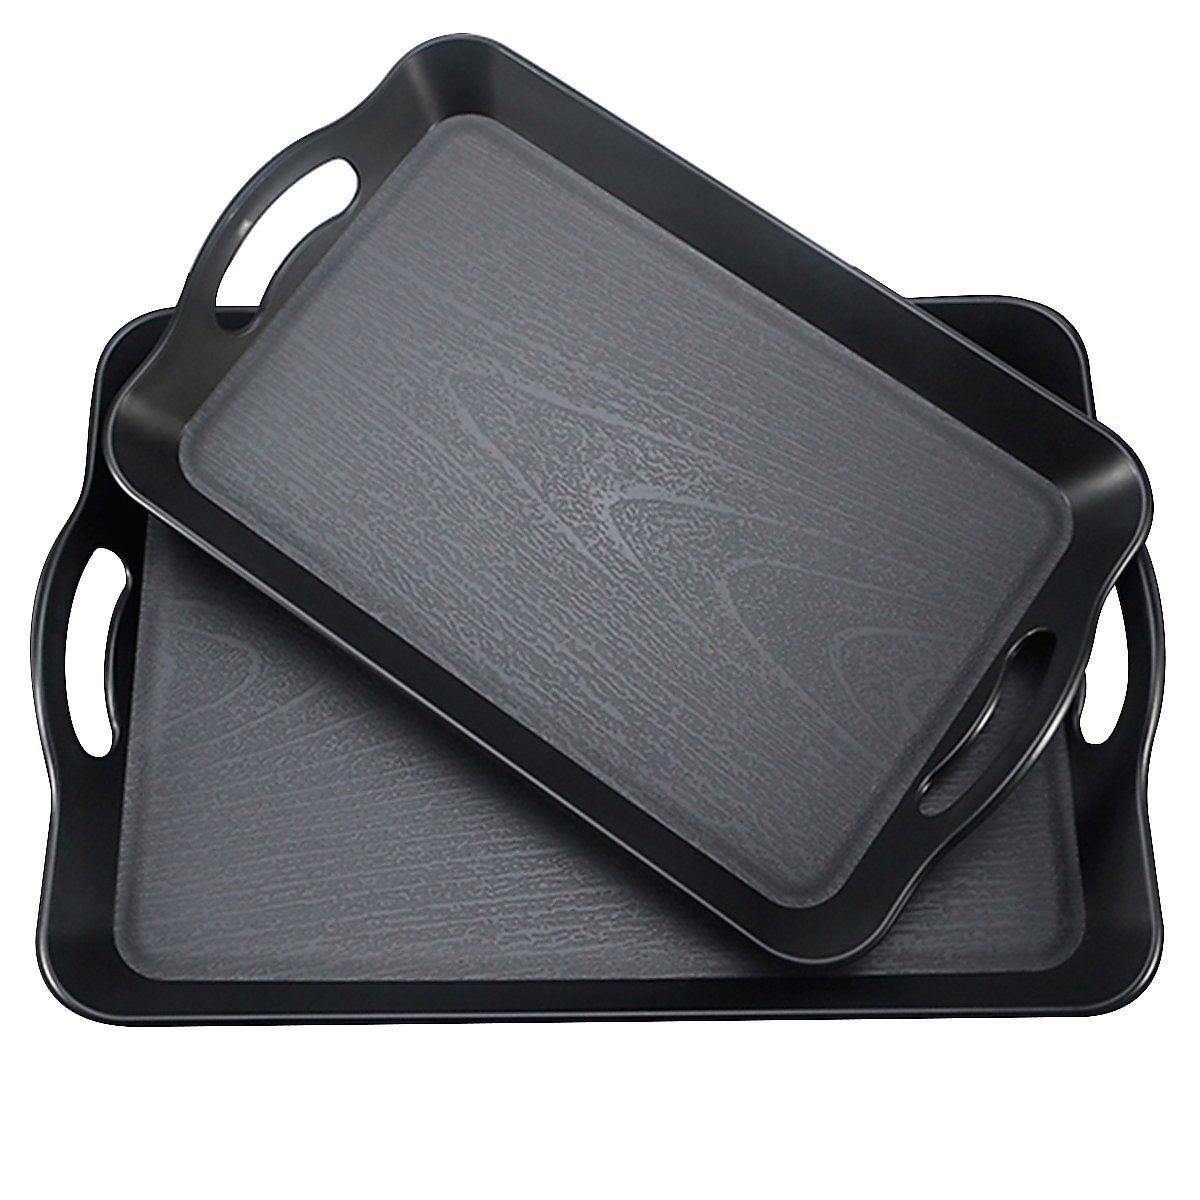 Fecihor Set of 2 Pieces Multi-Purpose Rectangular Waterproof Plastic Serving Tray with Wide Handle, Black 16.5'' x 11'' and 14.5'' x 9''